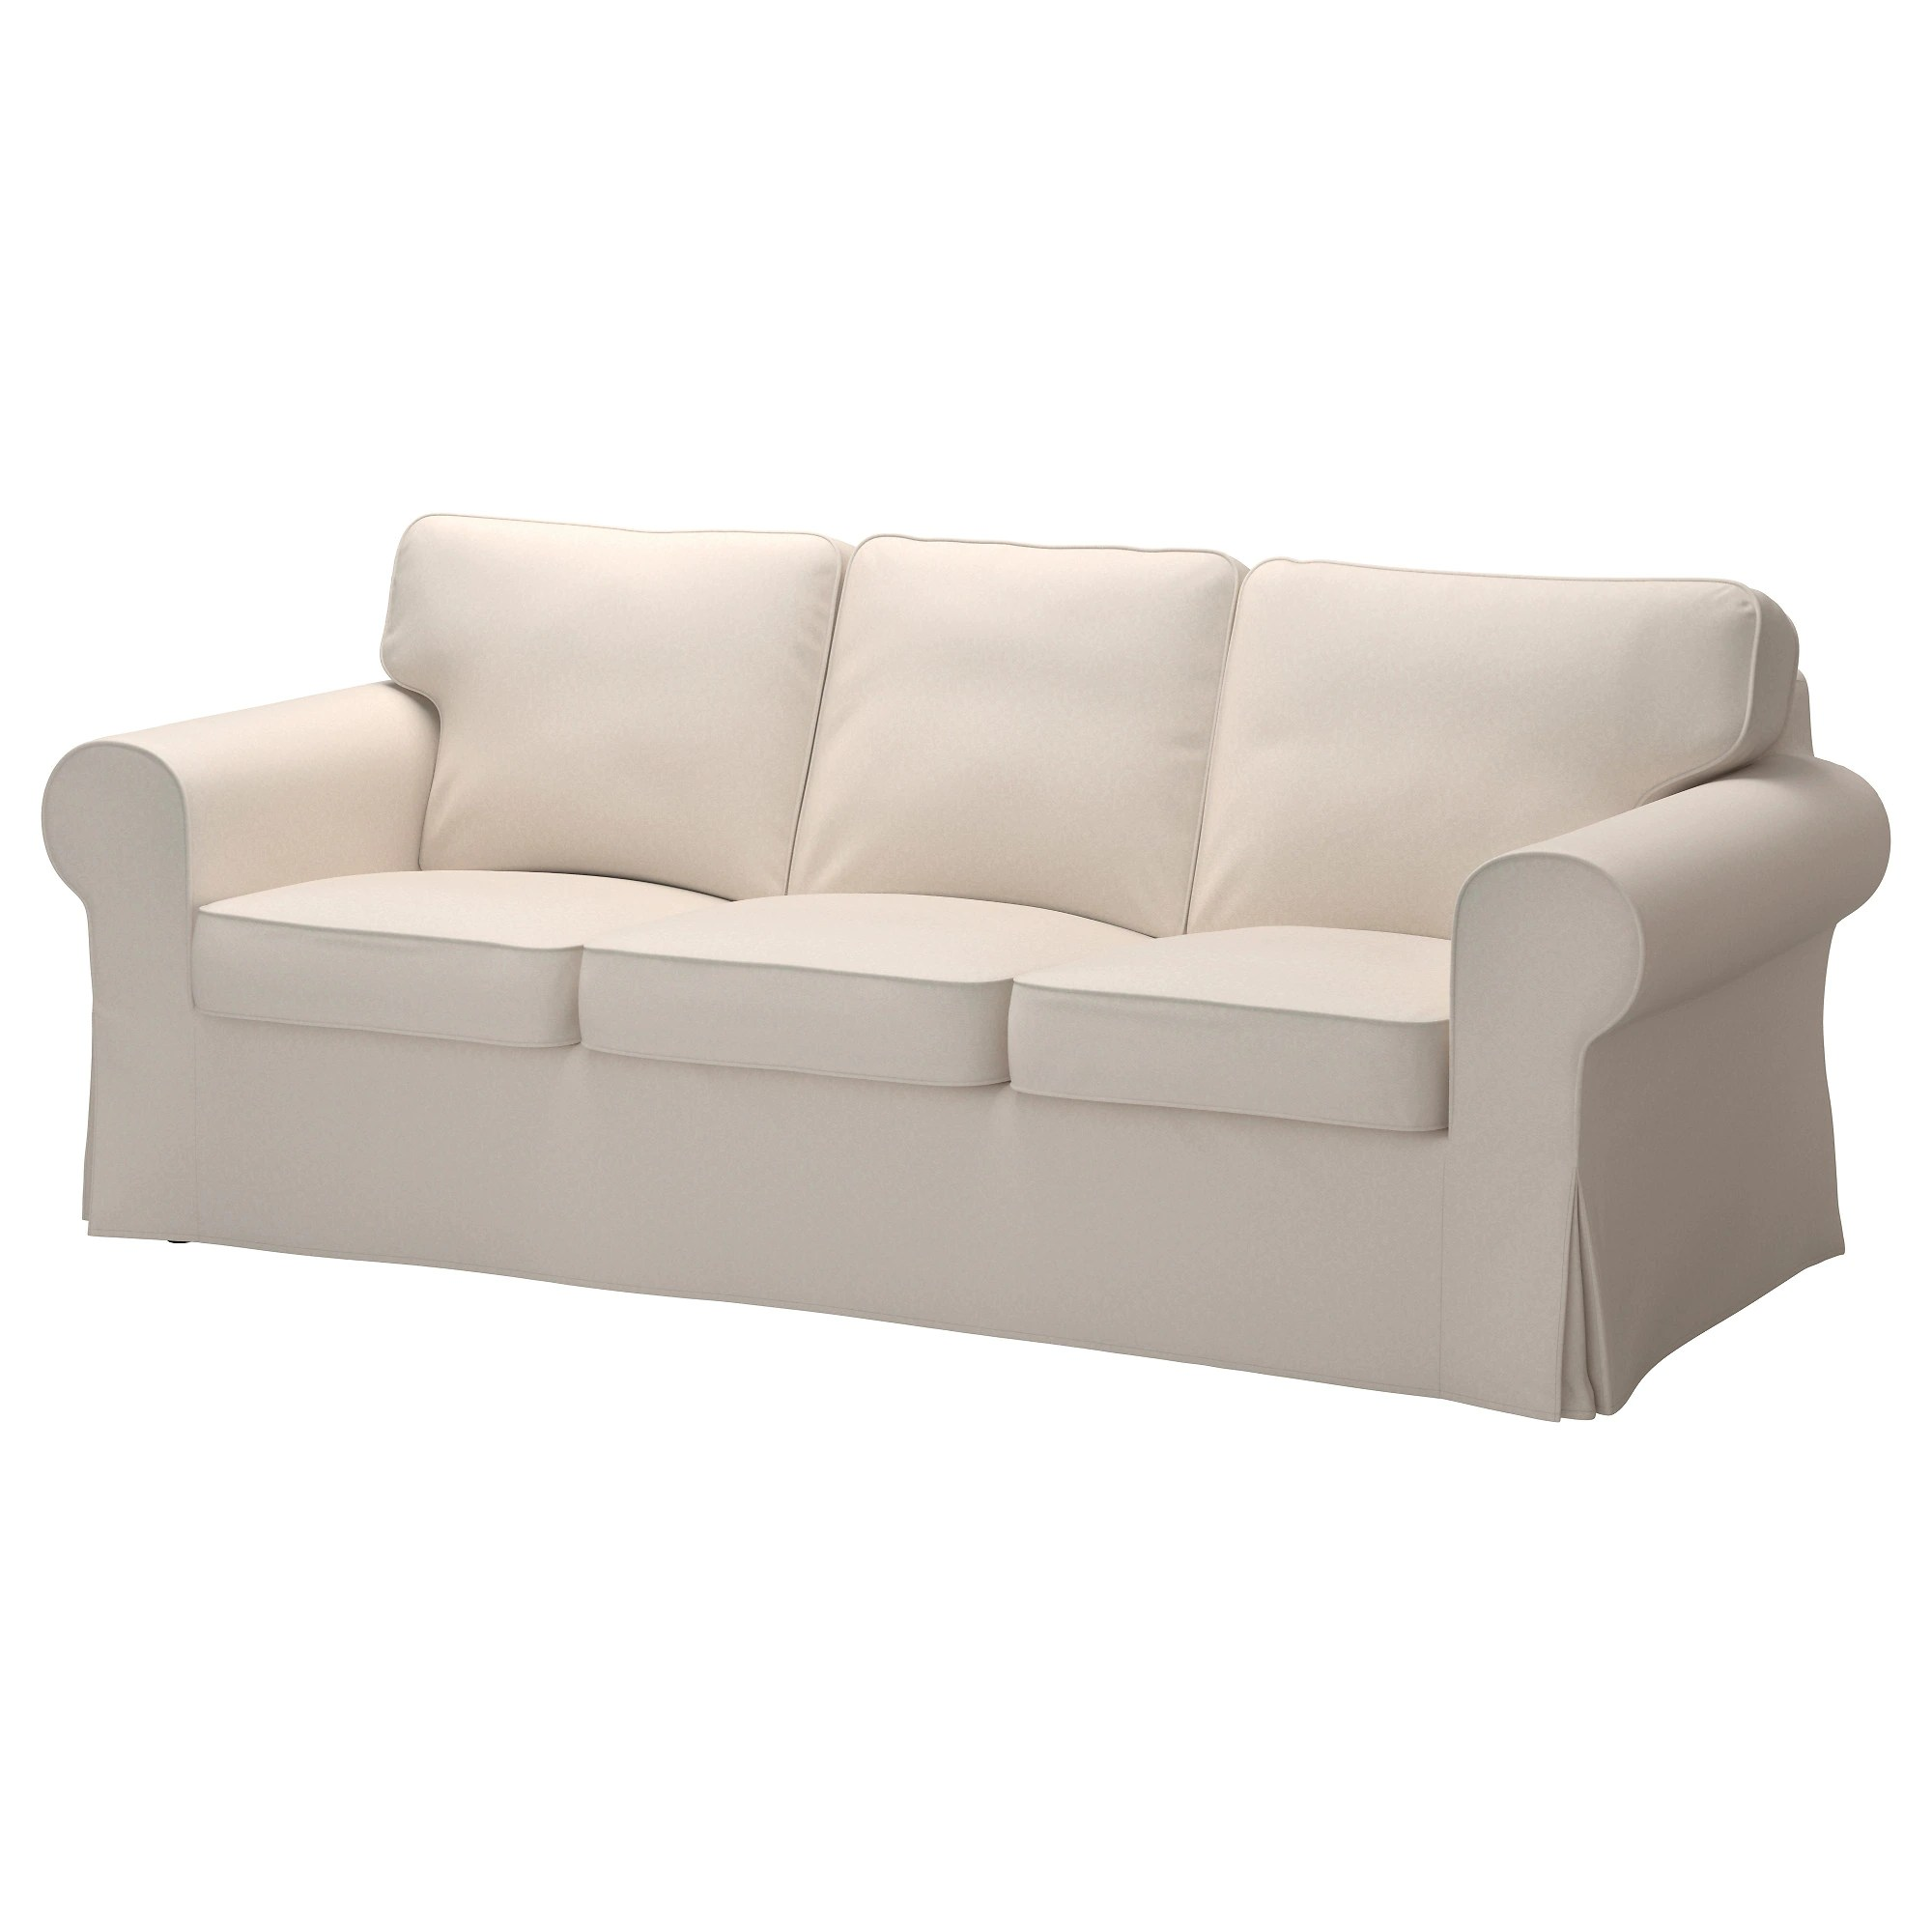 Couches In Ikea Sofa Ektorp Lofallet Beige